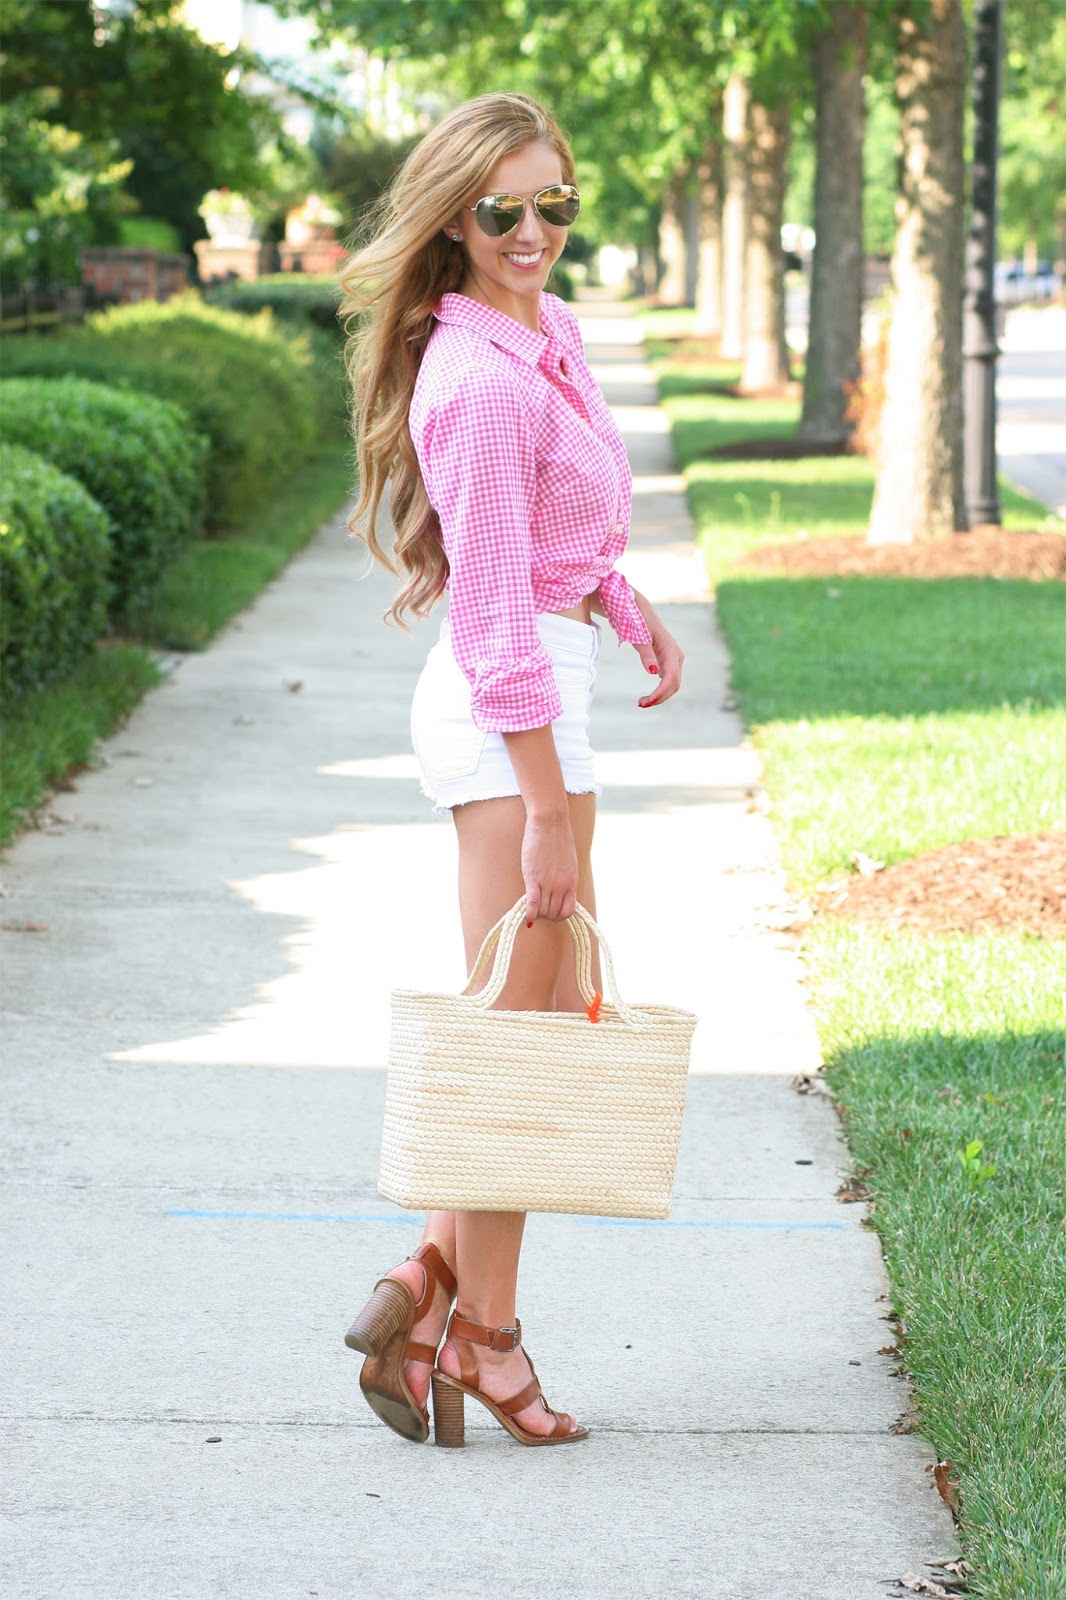 Sara-kate-styling-Steadman-Raleigh-fashion-blogger-frill-blog-society-nc